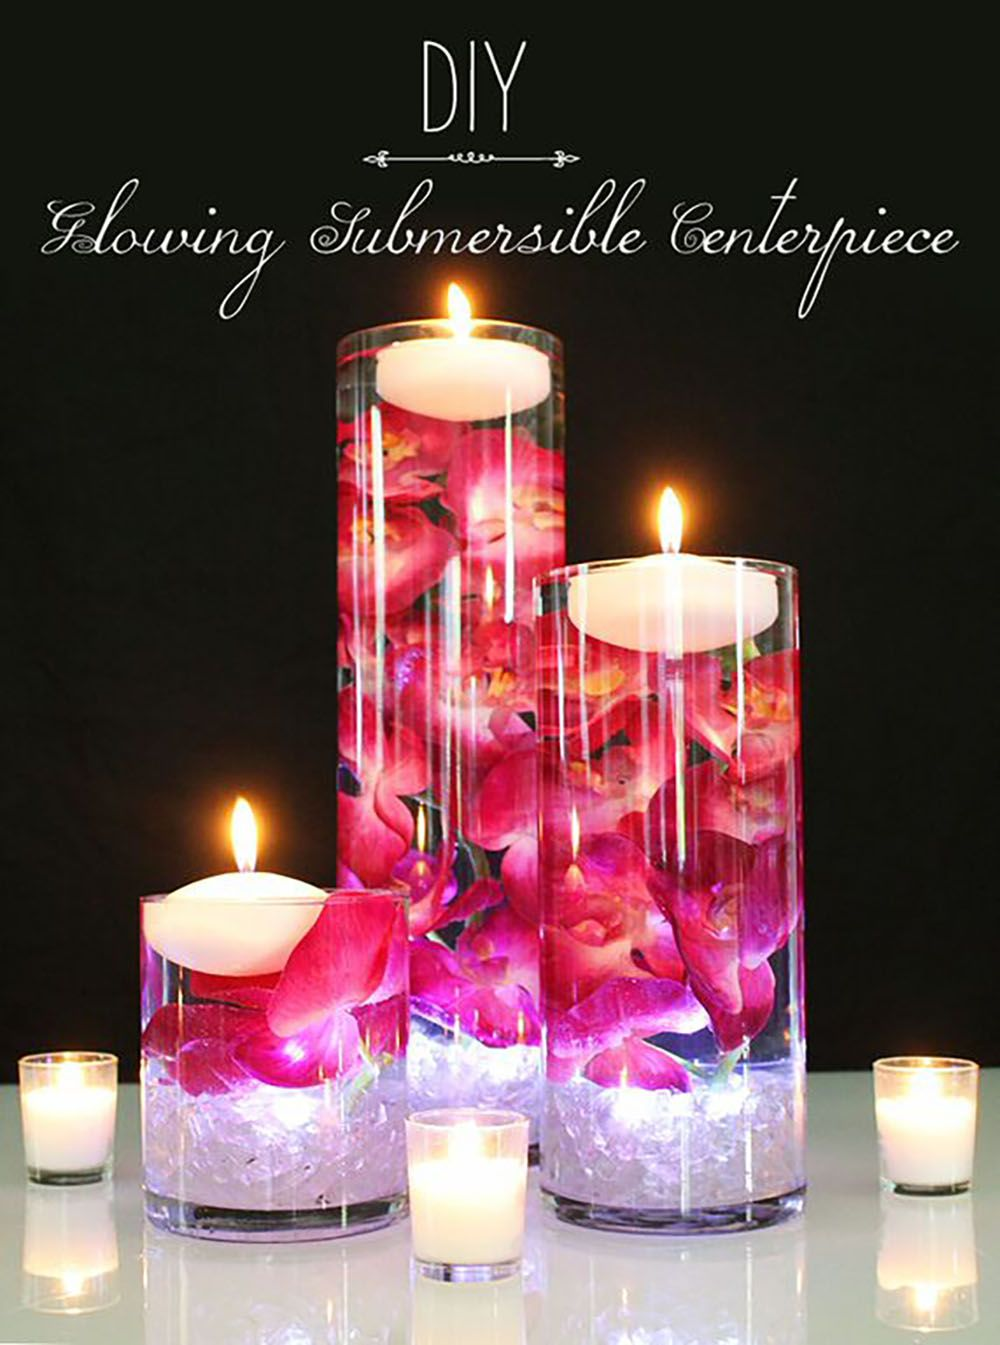 Diy glowing submersible centerpiece afloral wedding blog learn how to make a floating candle centerpiece for your wedding making a diy wedding centerpiece is easy this diy submersible centerpiece is gorgeous junglespirit Image collections